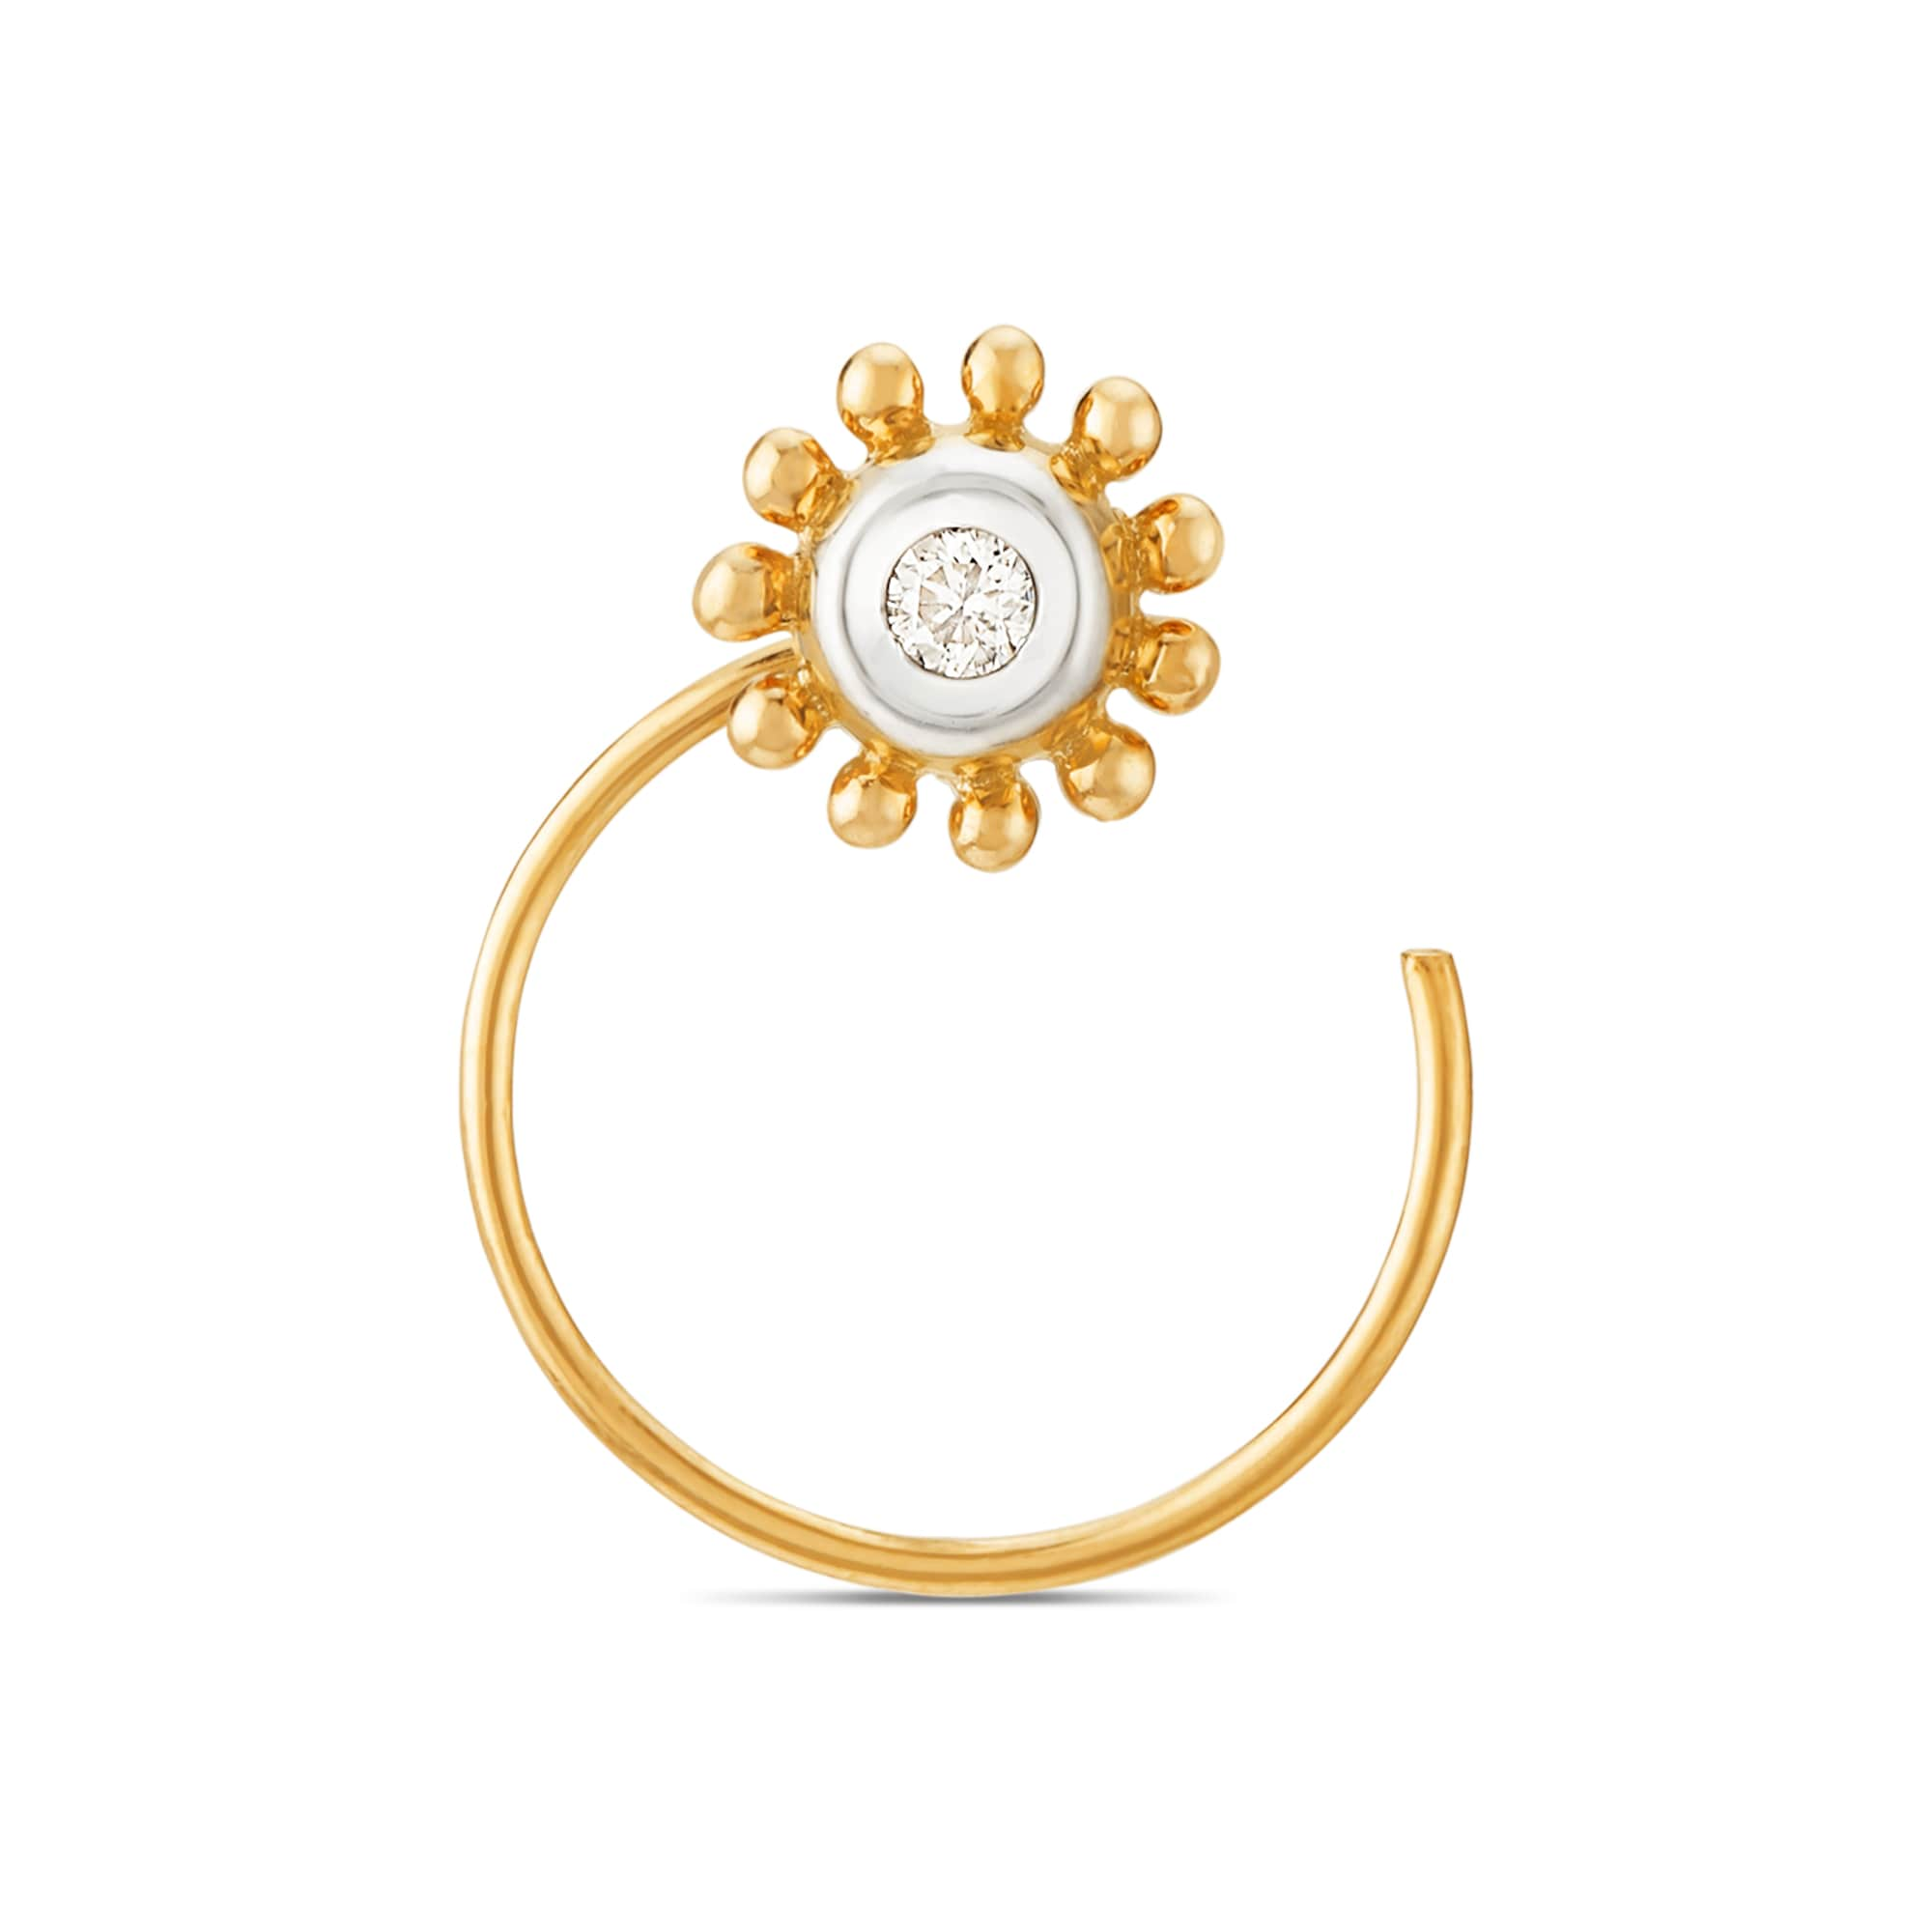 Mia Everyday Essentials By Tanishq 14kt Yellow Gold Diamond Nose